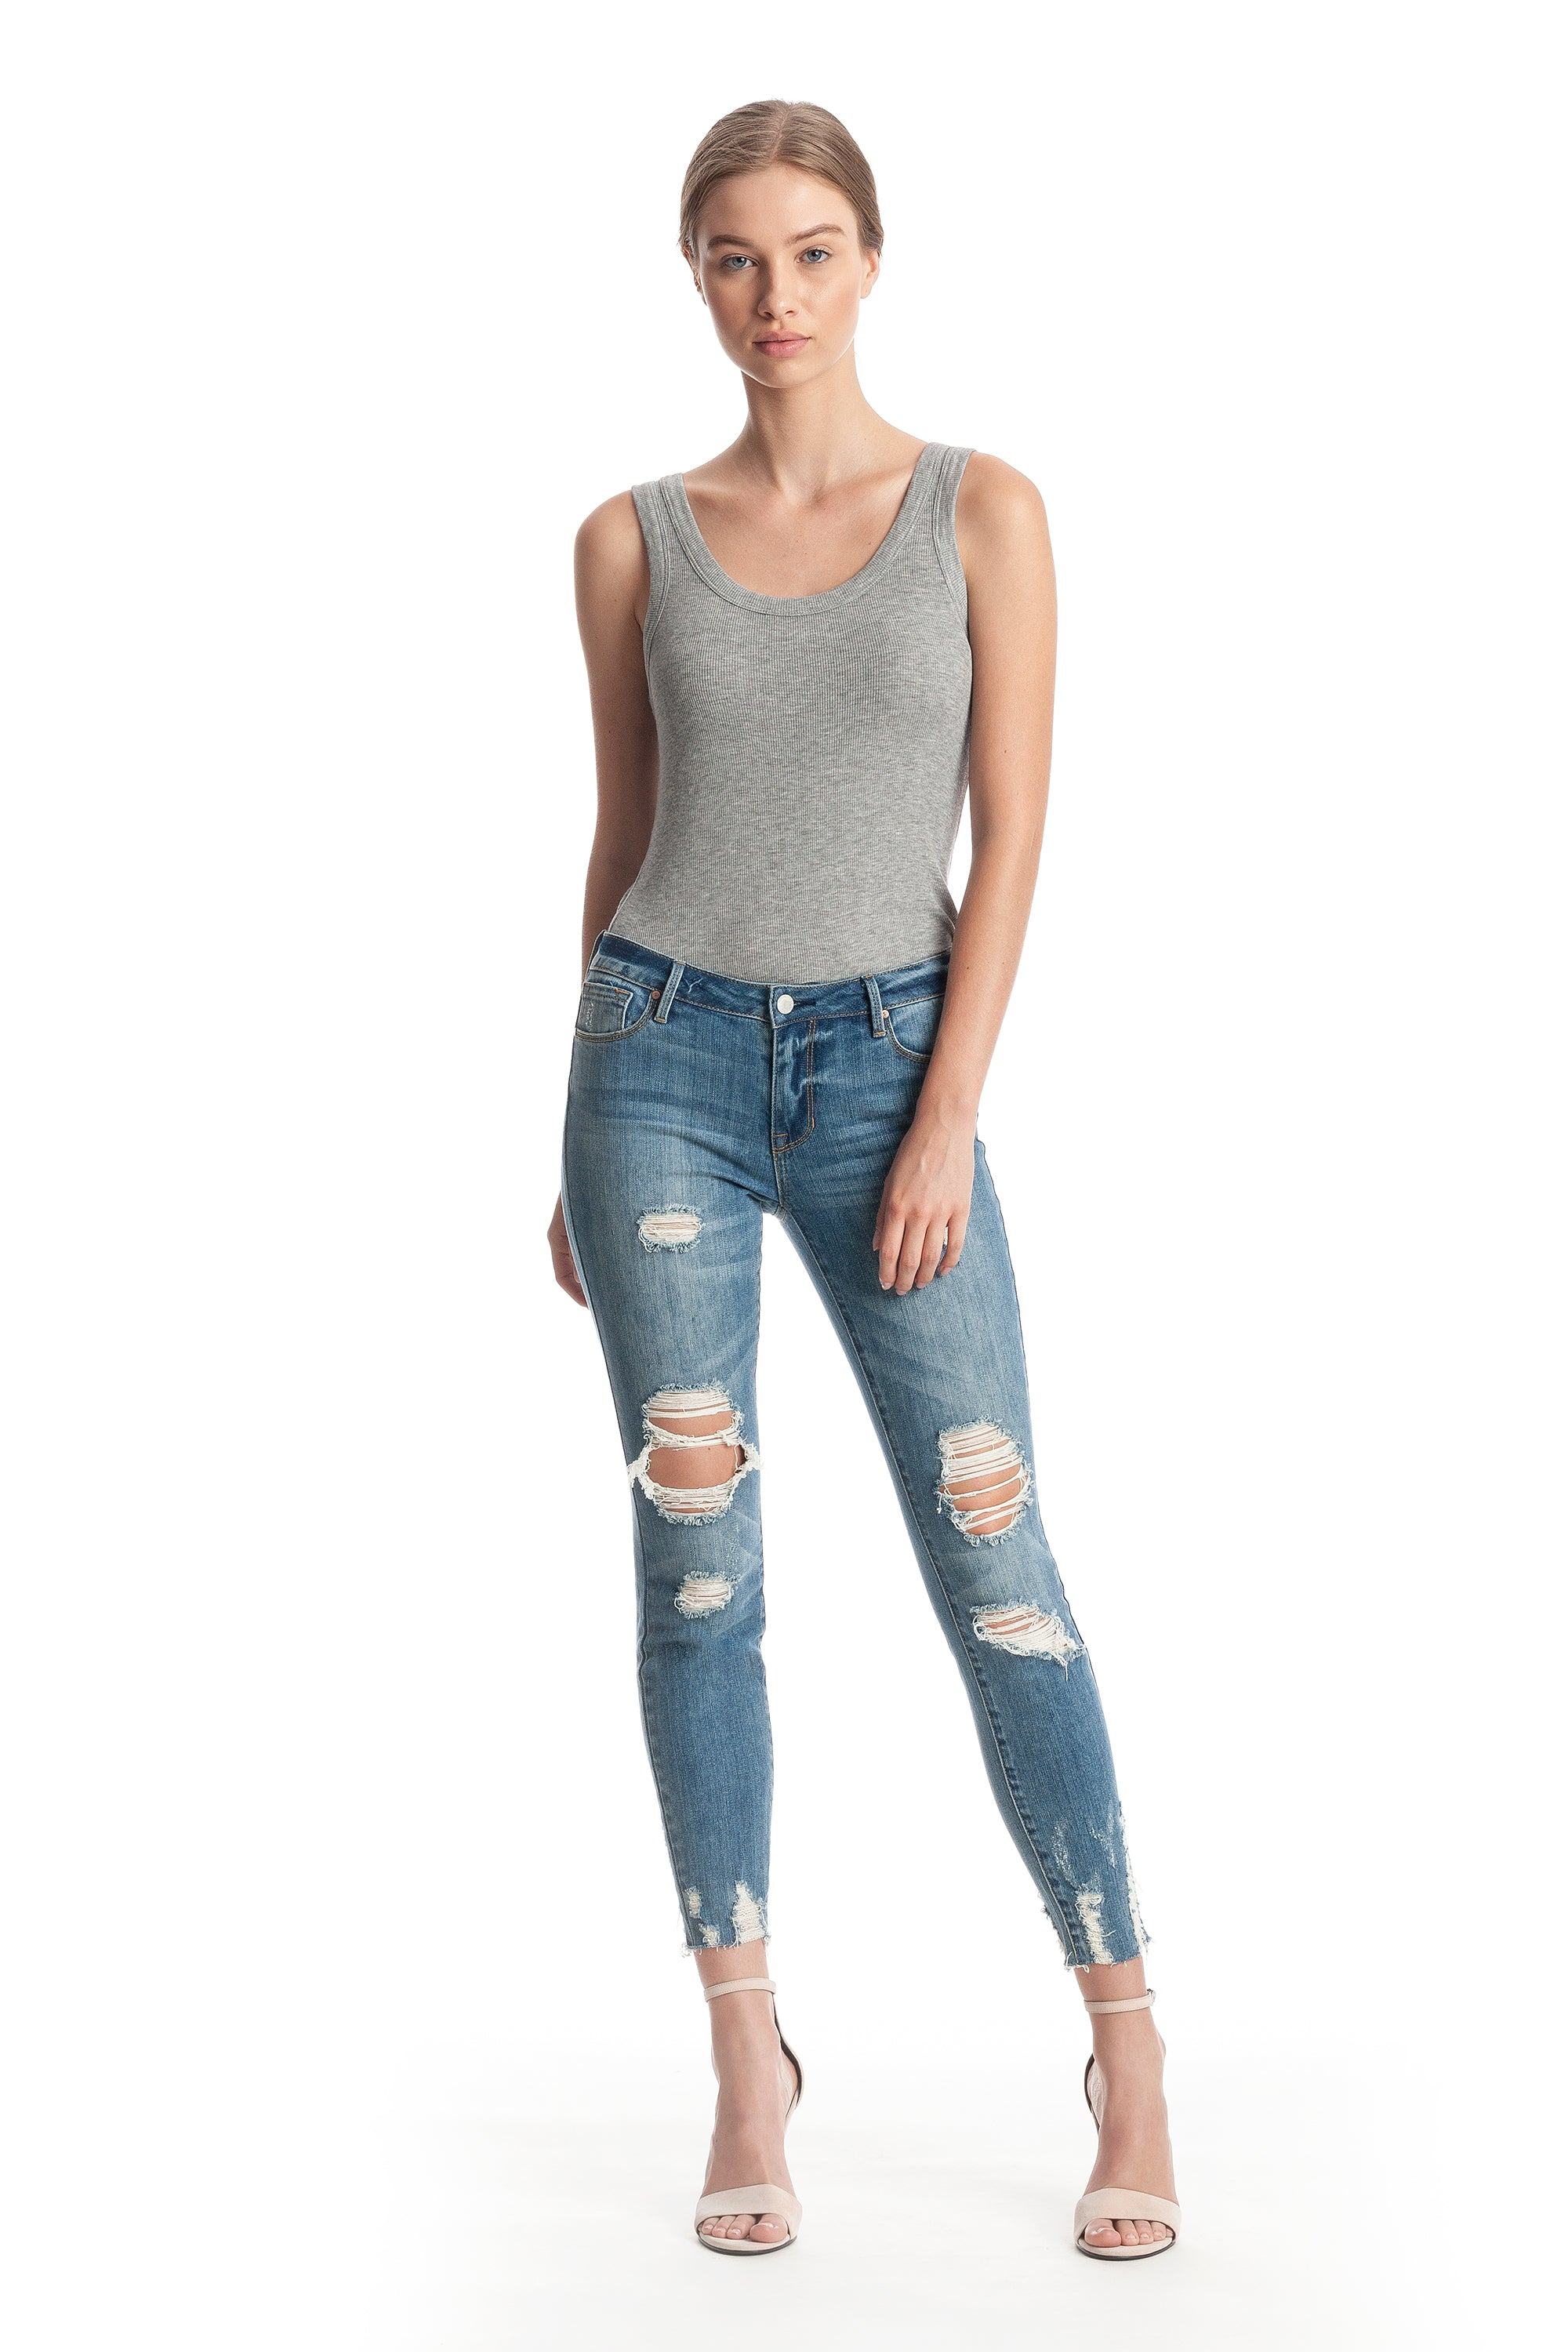 THE ULTRA BABE JEAN PANTS by KENDALL + KYLIE